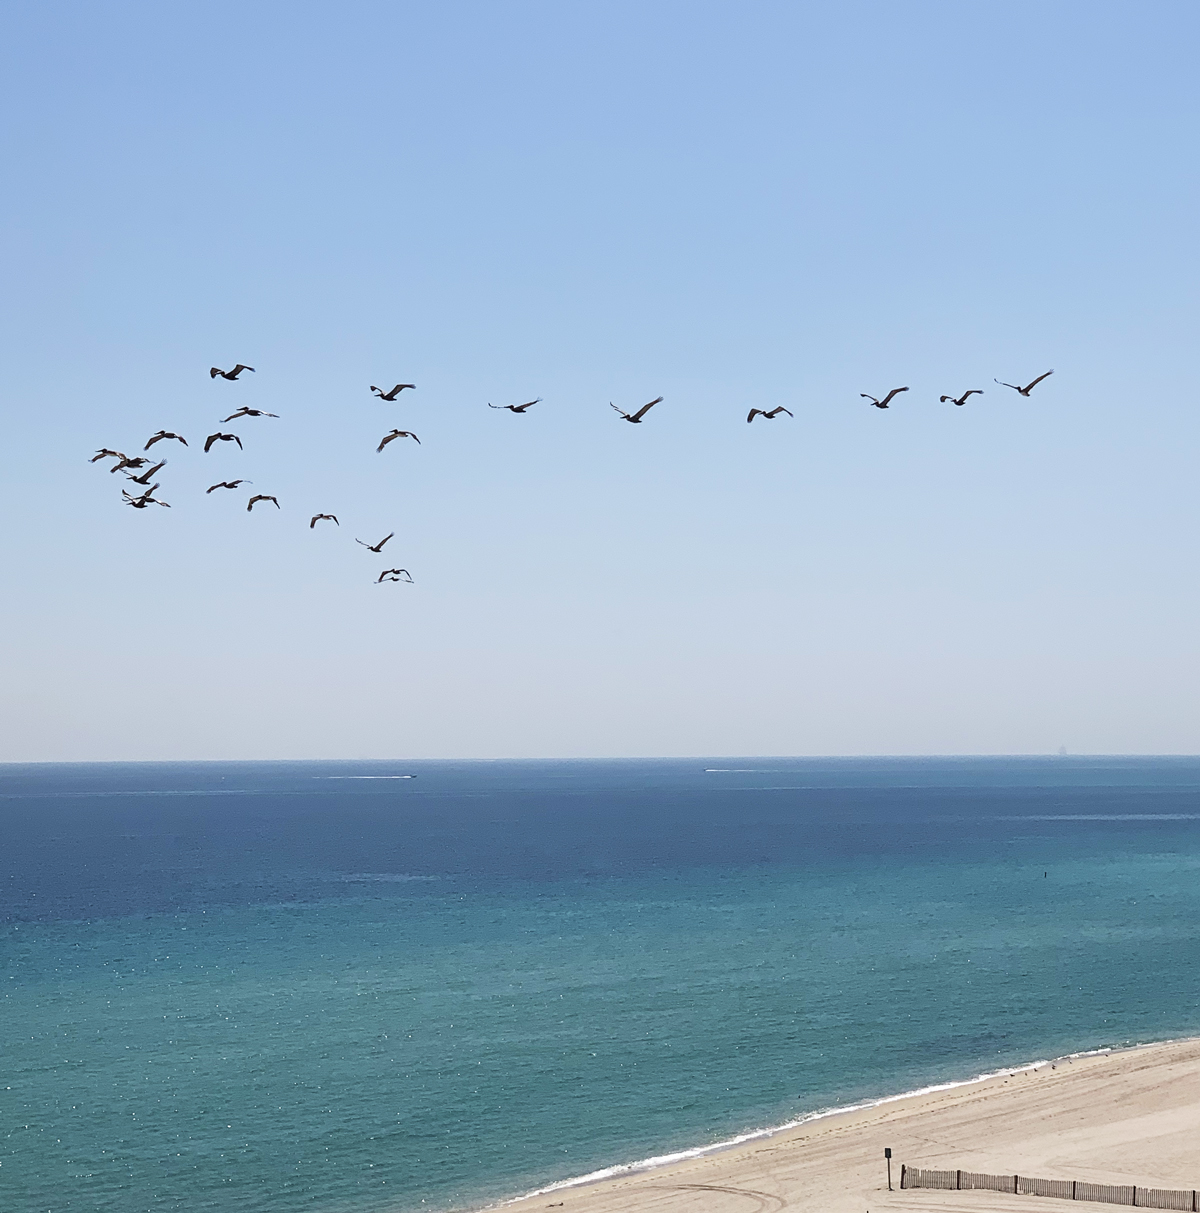 Pelicans migrating north